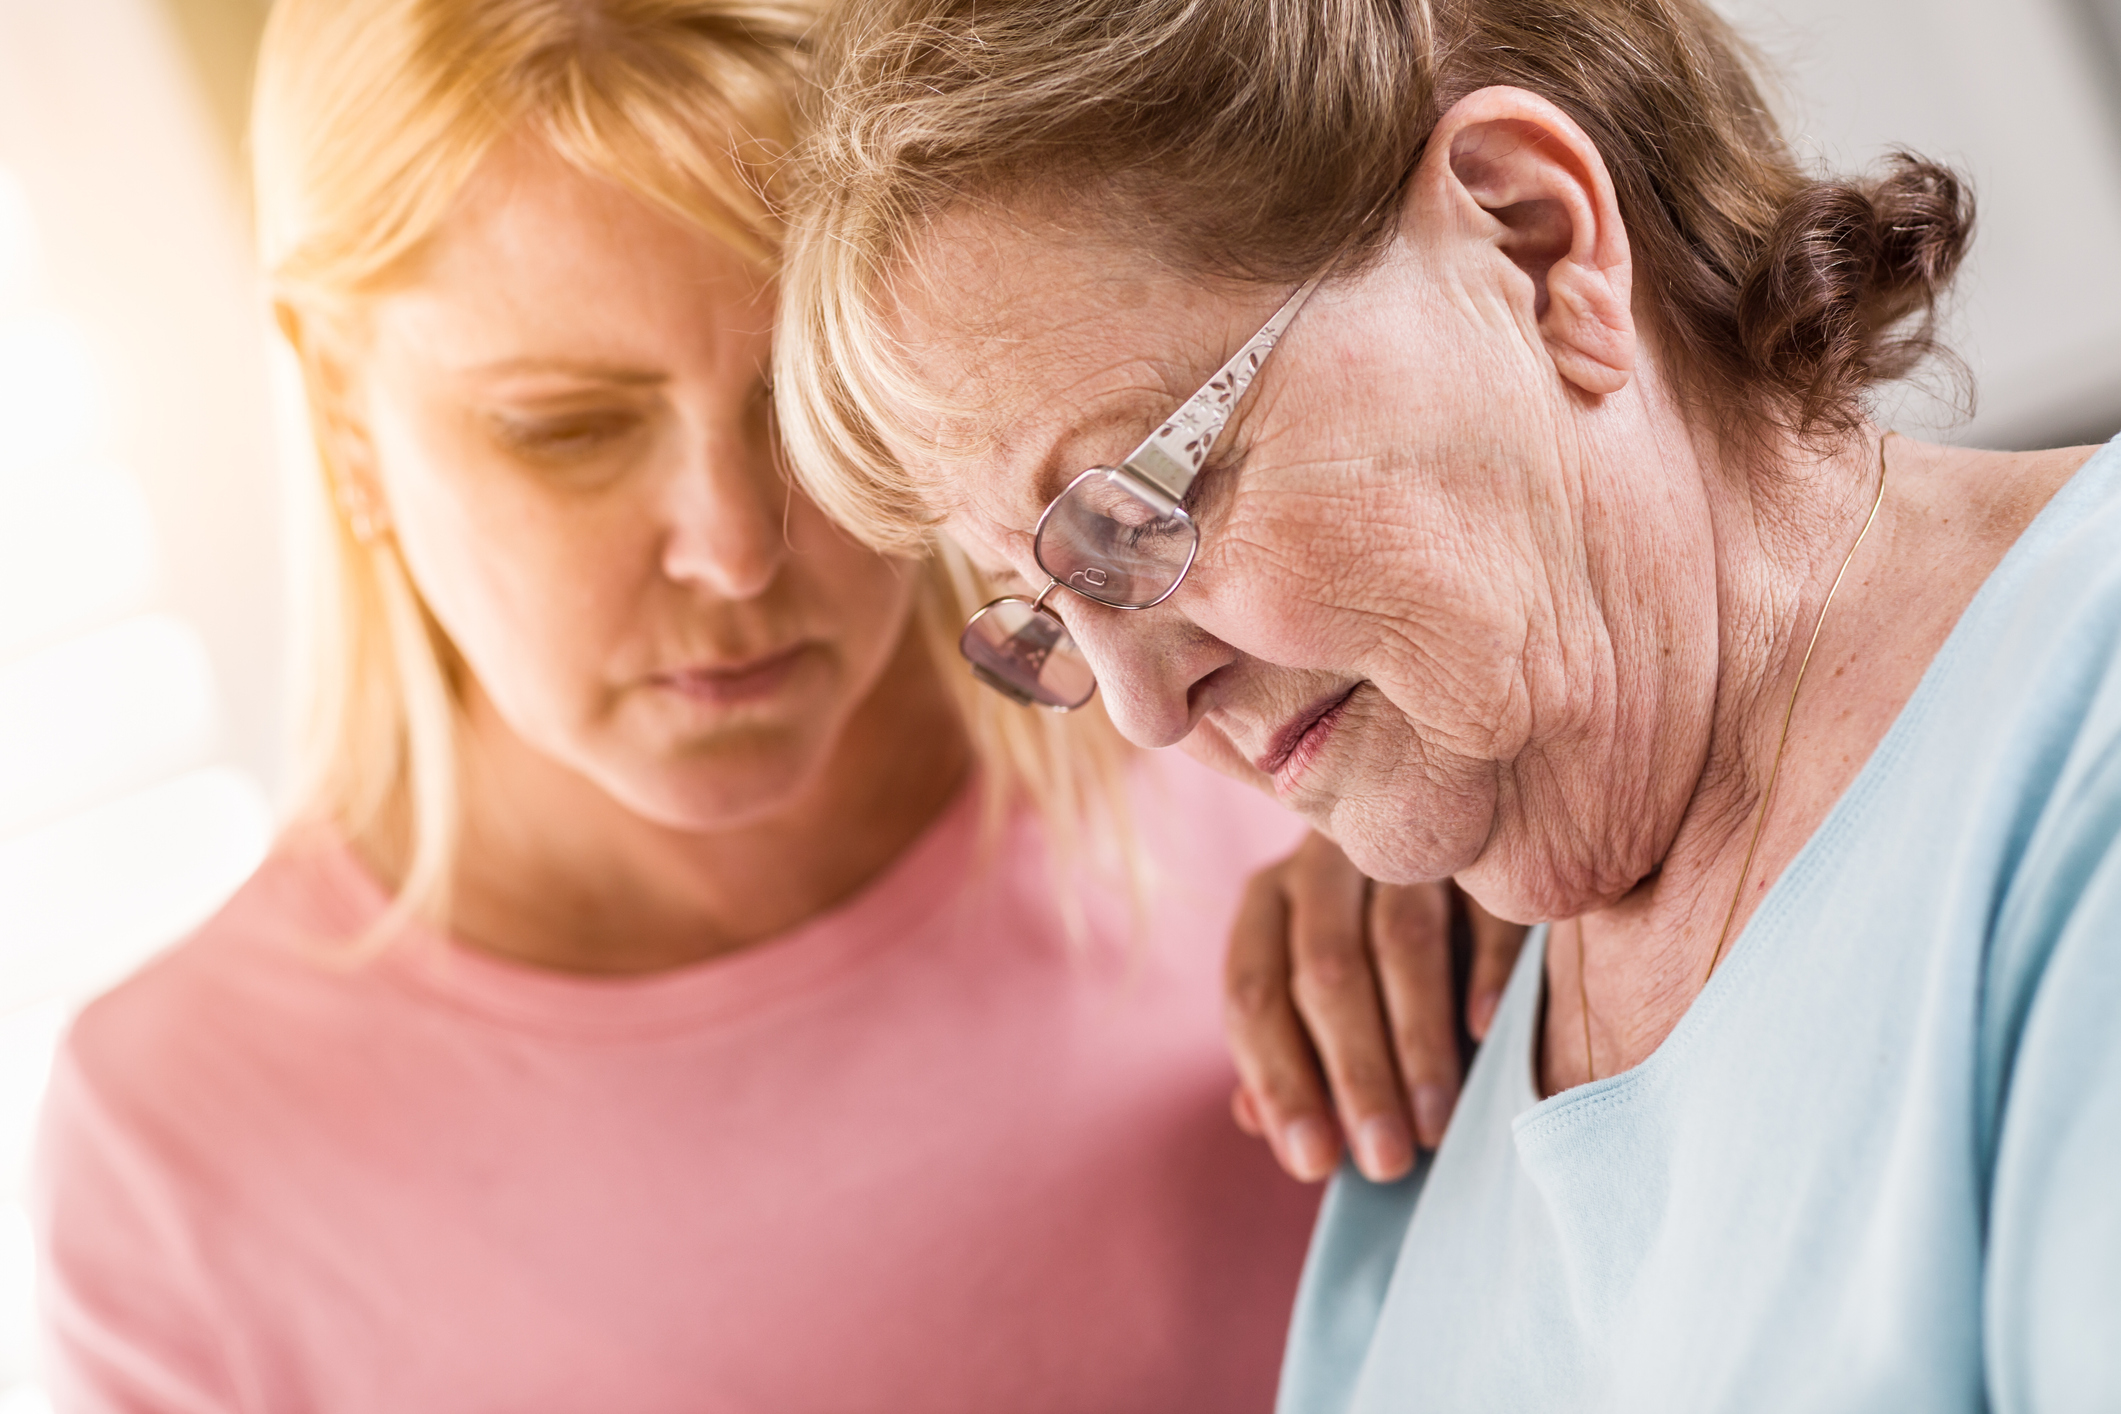 Speaking with your loved one about moving into assisted living can be difficult